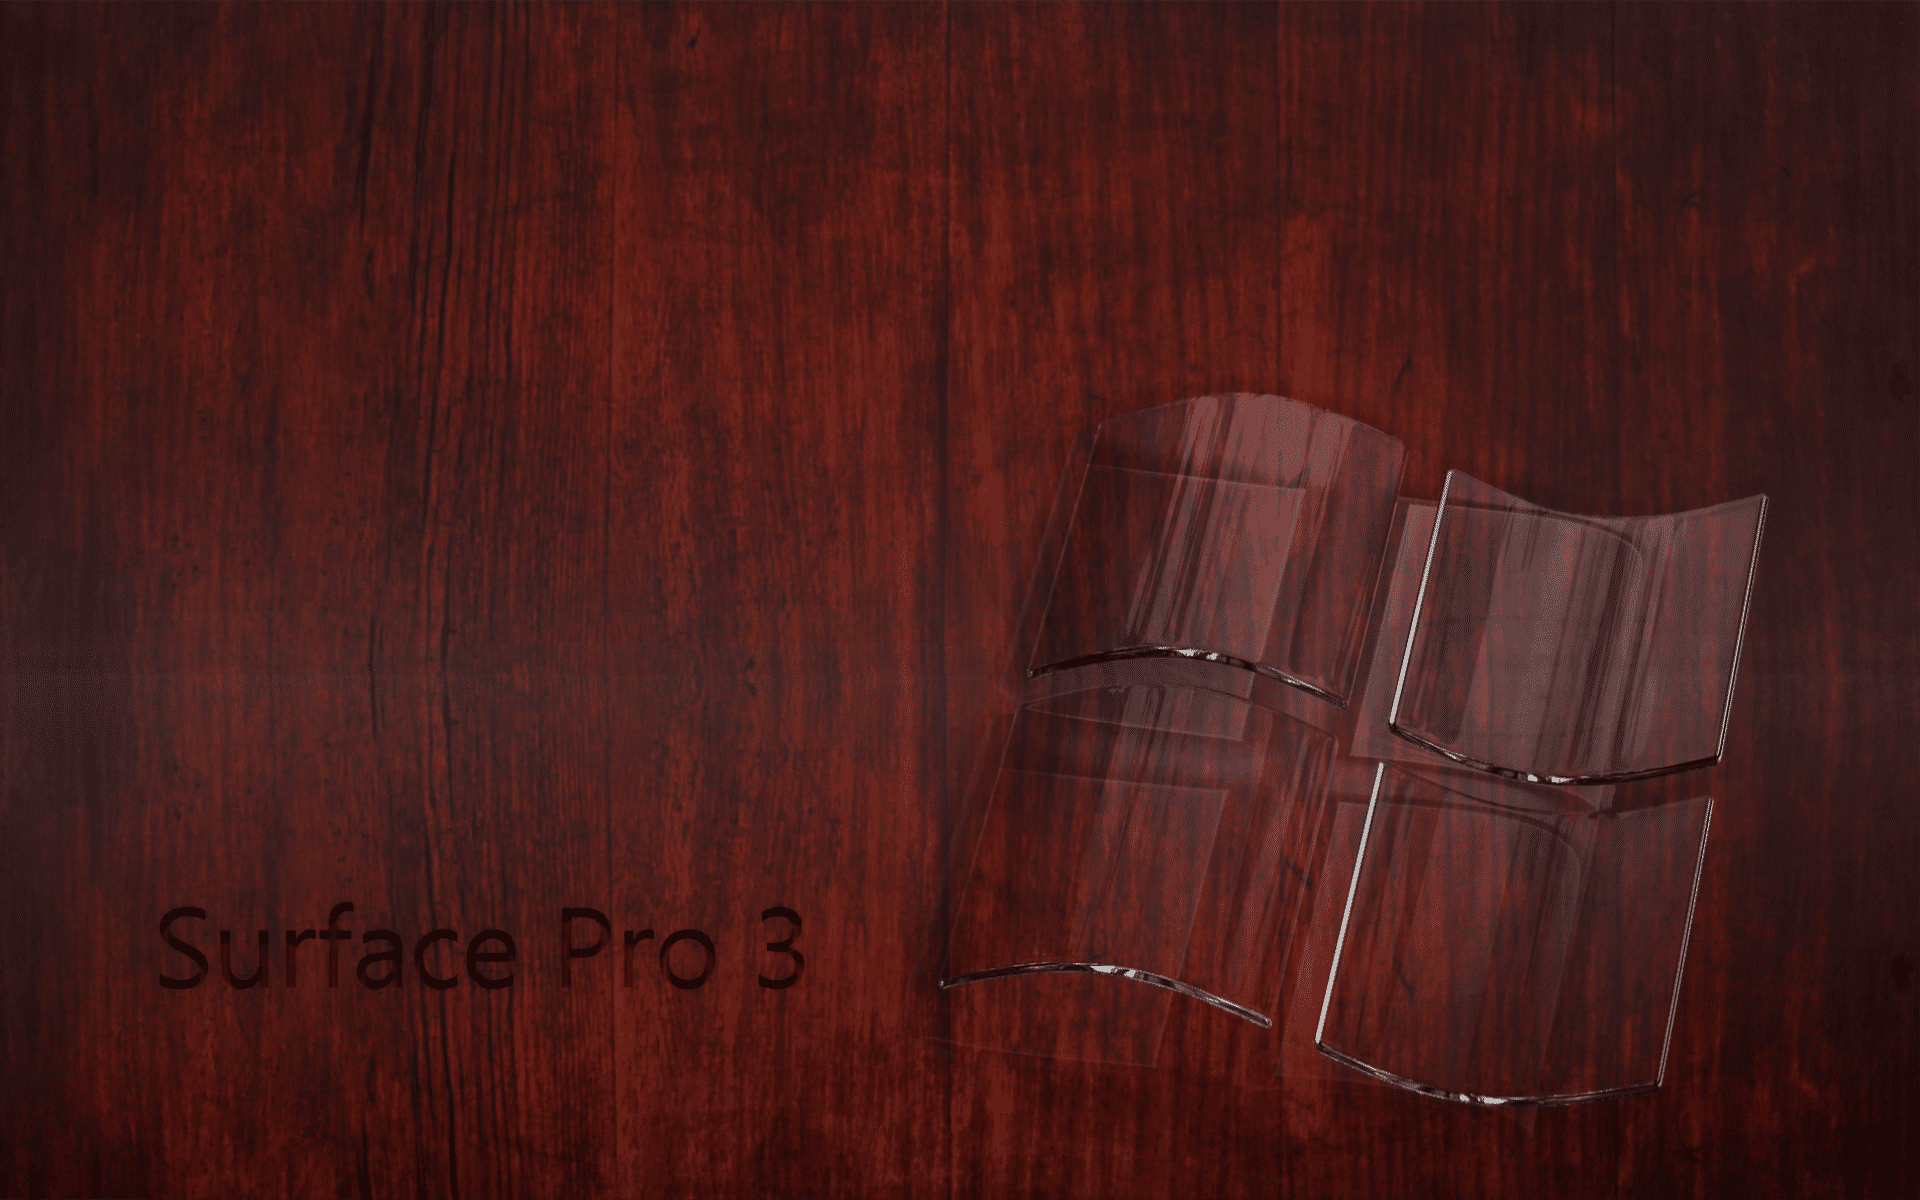 Surfacce Pro 3_windows_glass_logo_cherrywood.png